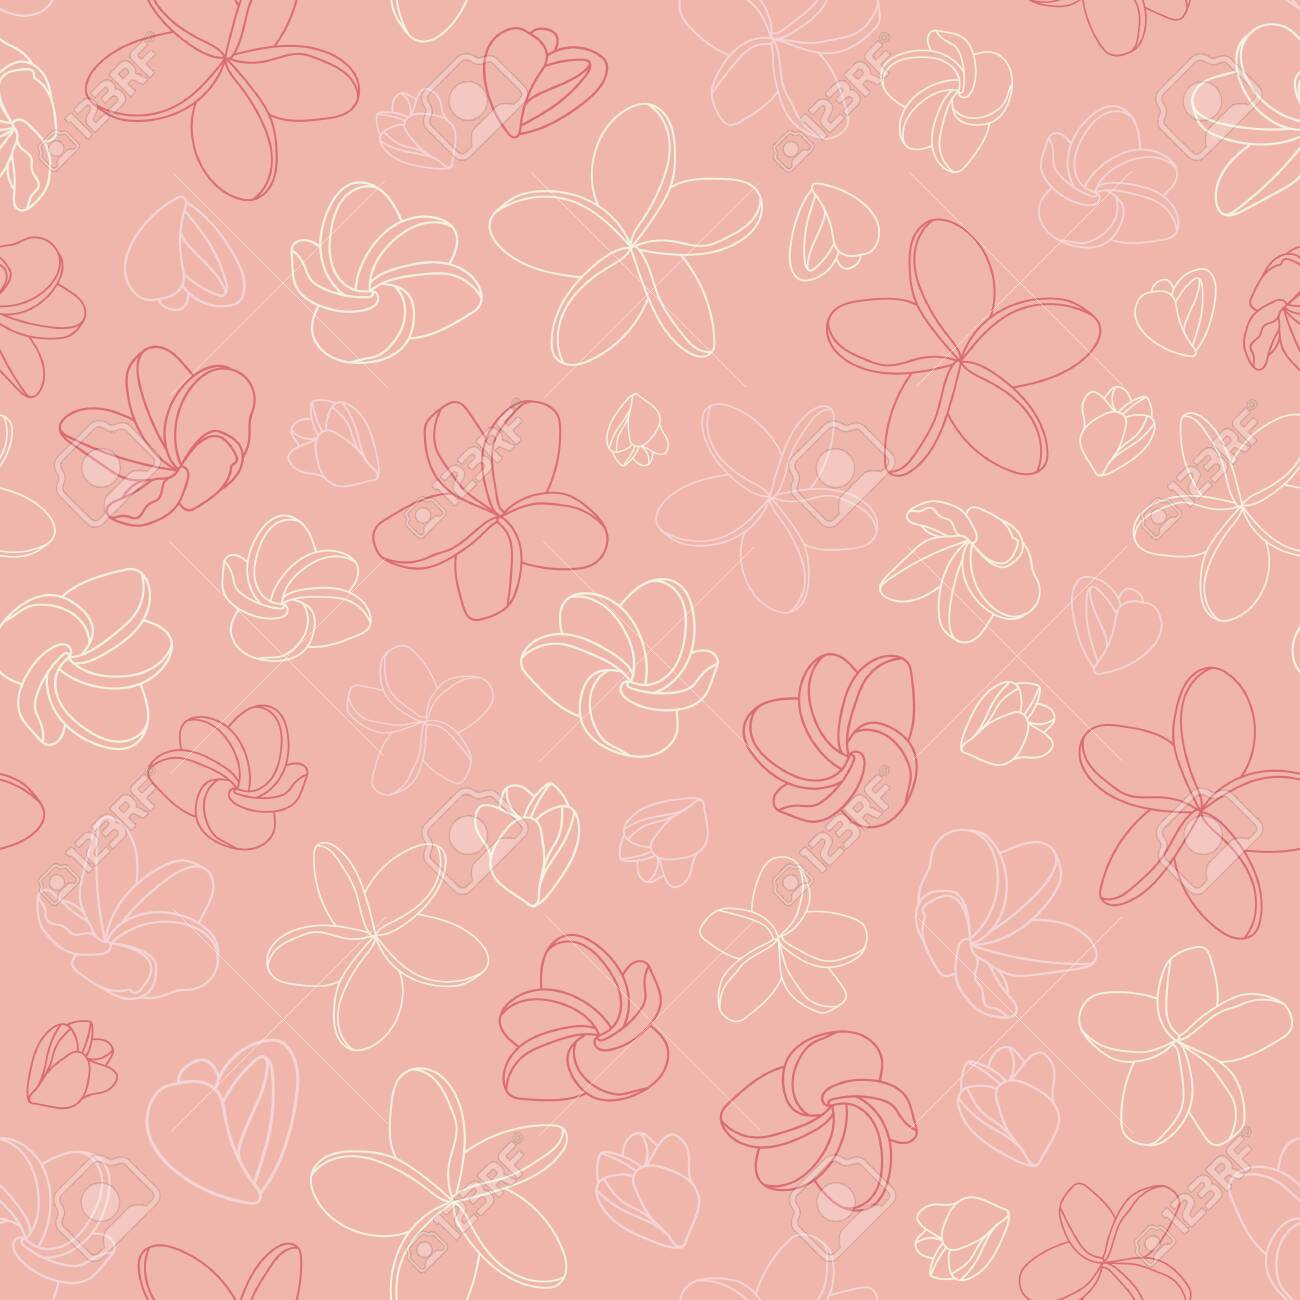 Romantic pink vector pattern with plumeria flowers - 140239382